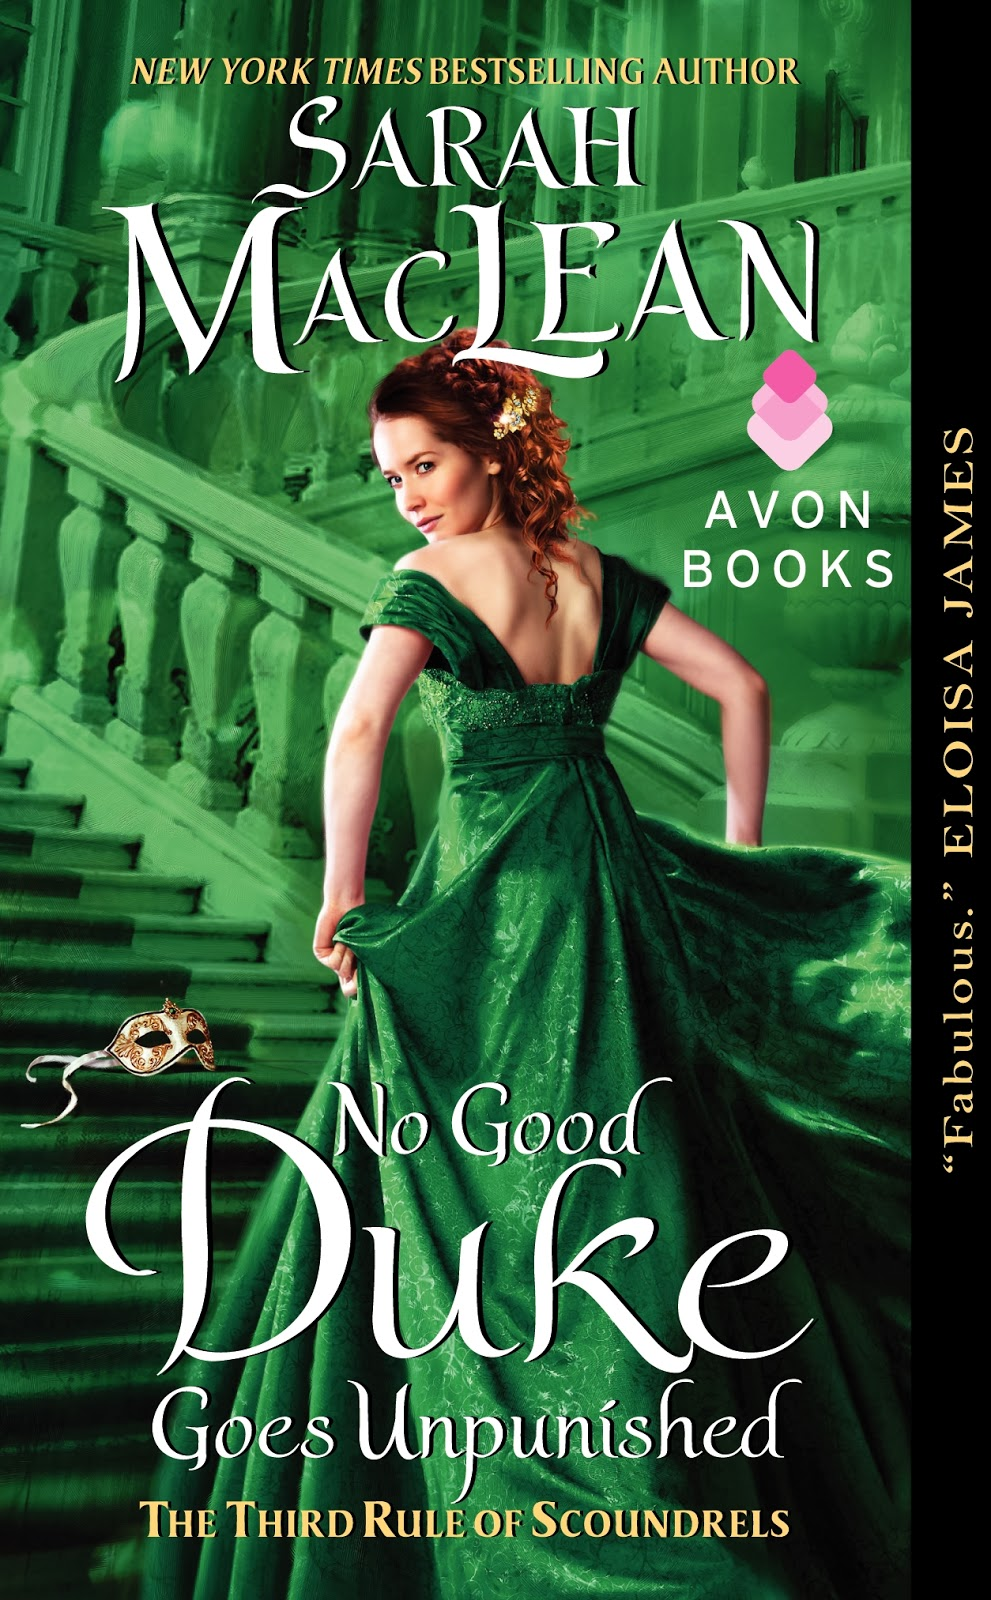 No Good Duke Goes Unpunished by Sarah Maclean | Reviewed on Clear Eyes, Full Shelves